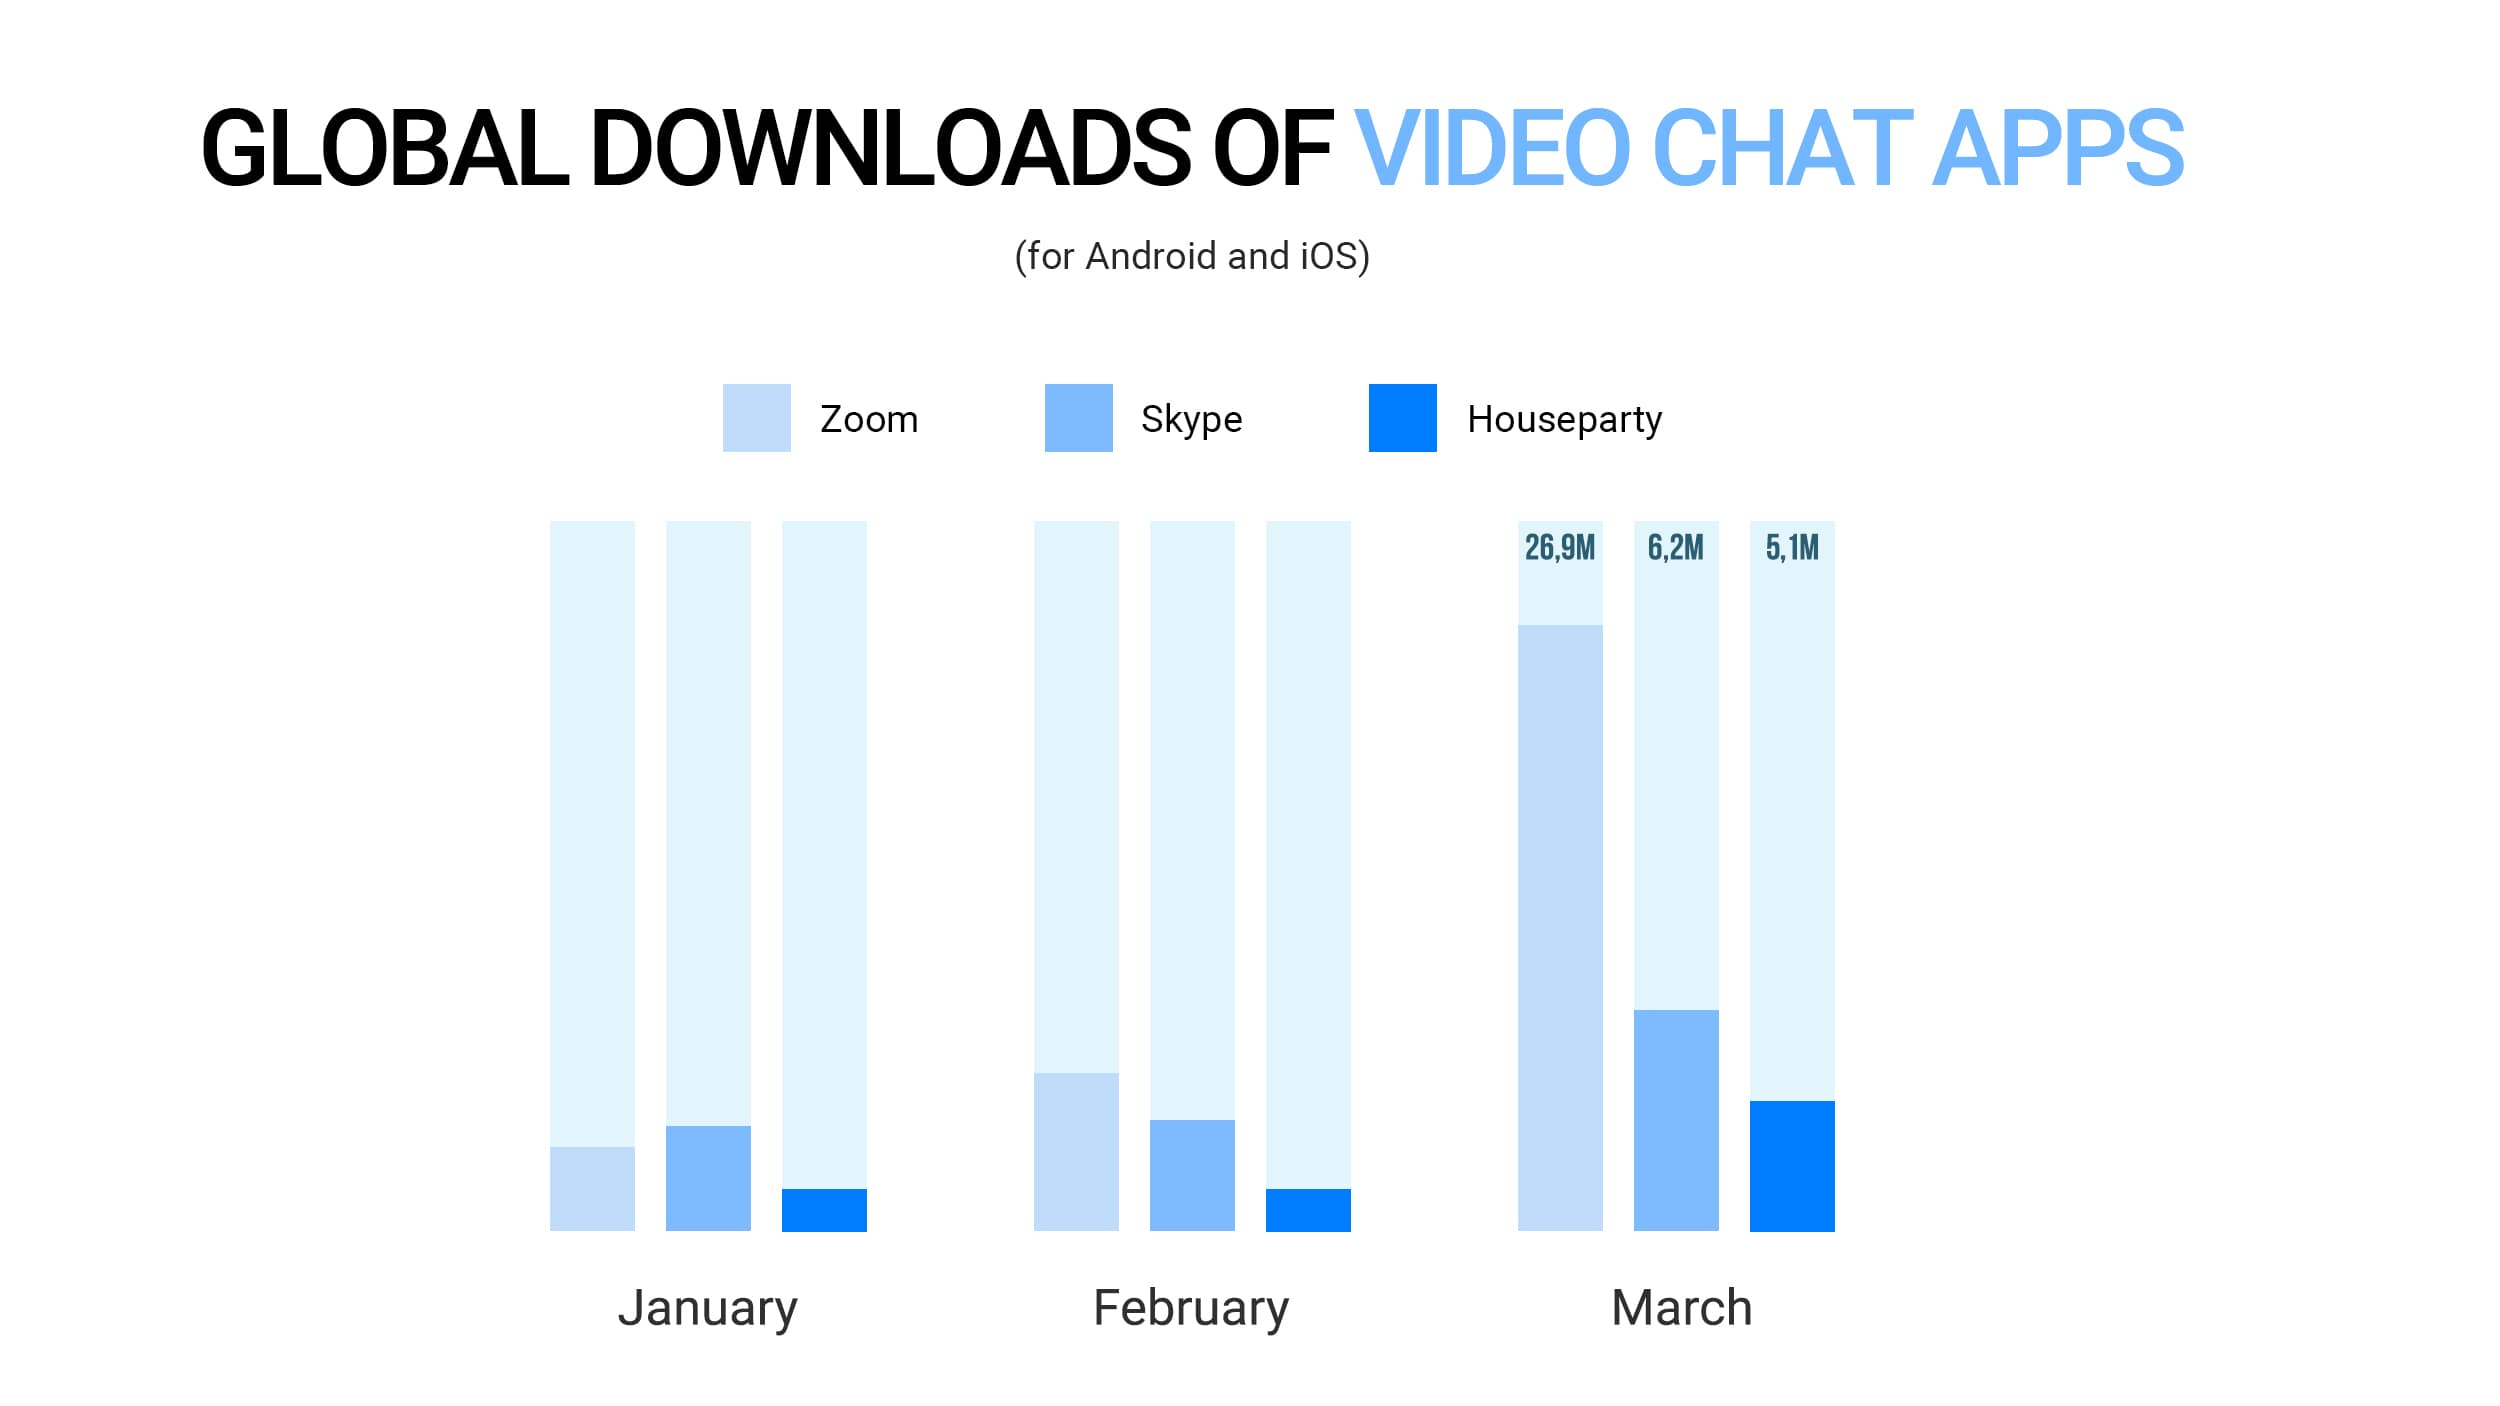 Global downloads of video chat apps statistic